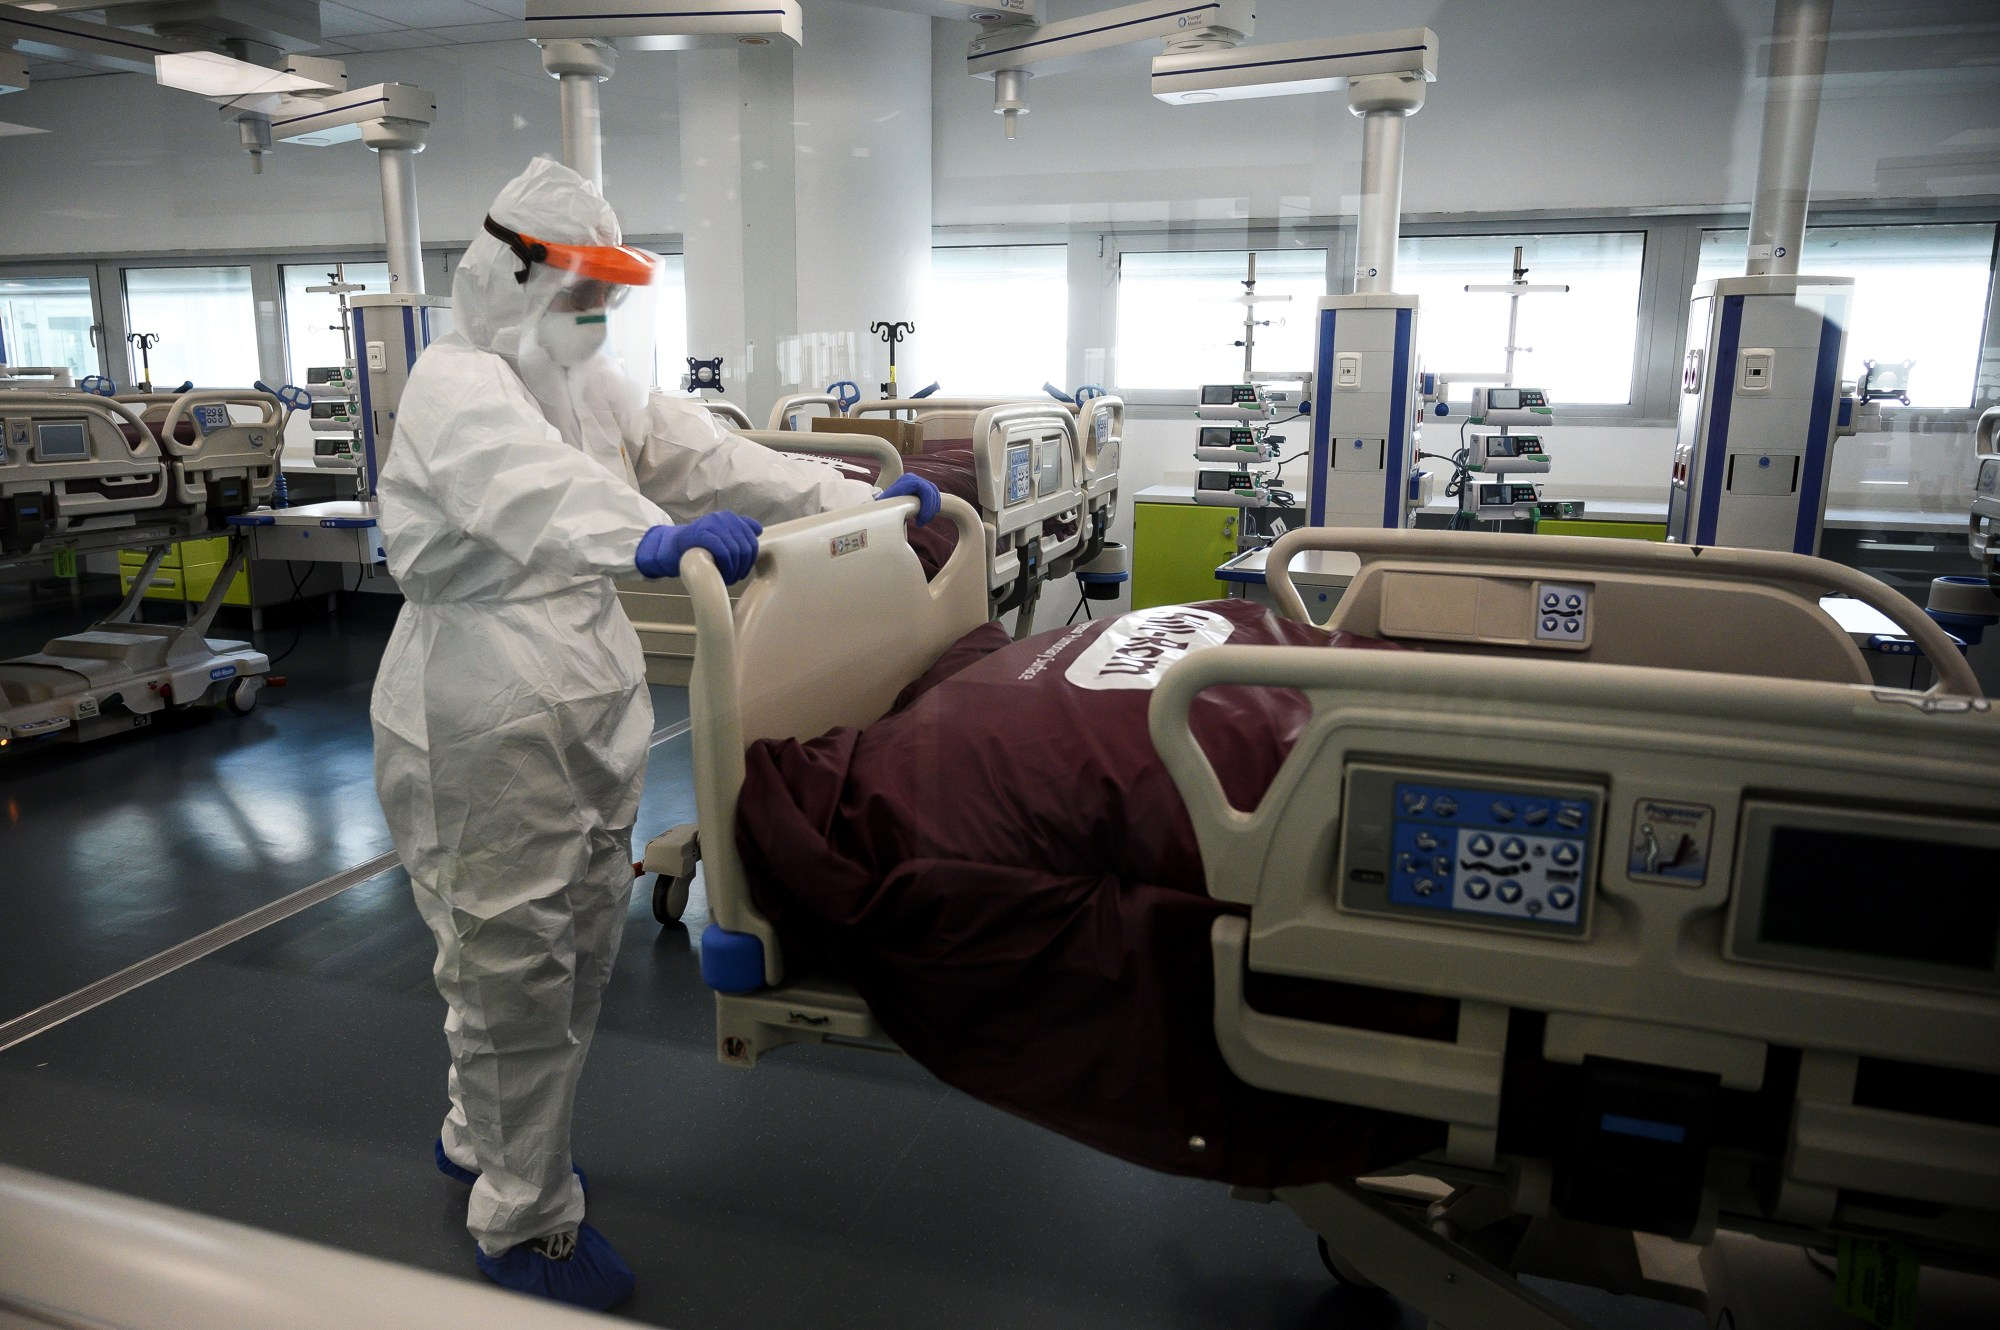 A nurse works to prepare the Intensive Care Unit in the new COVID-19 hospital on March 29, 2020, in Verduno, near Alba, northwestern Italy on the eve of its official opening, as part of the measures taken to fight against the spread of the novel coronavirus. (MARCO BERTORELLO/AFP via Getty Images)